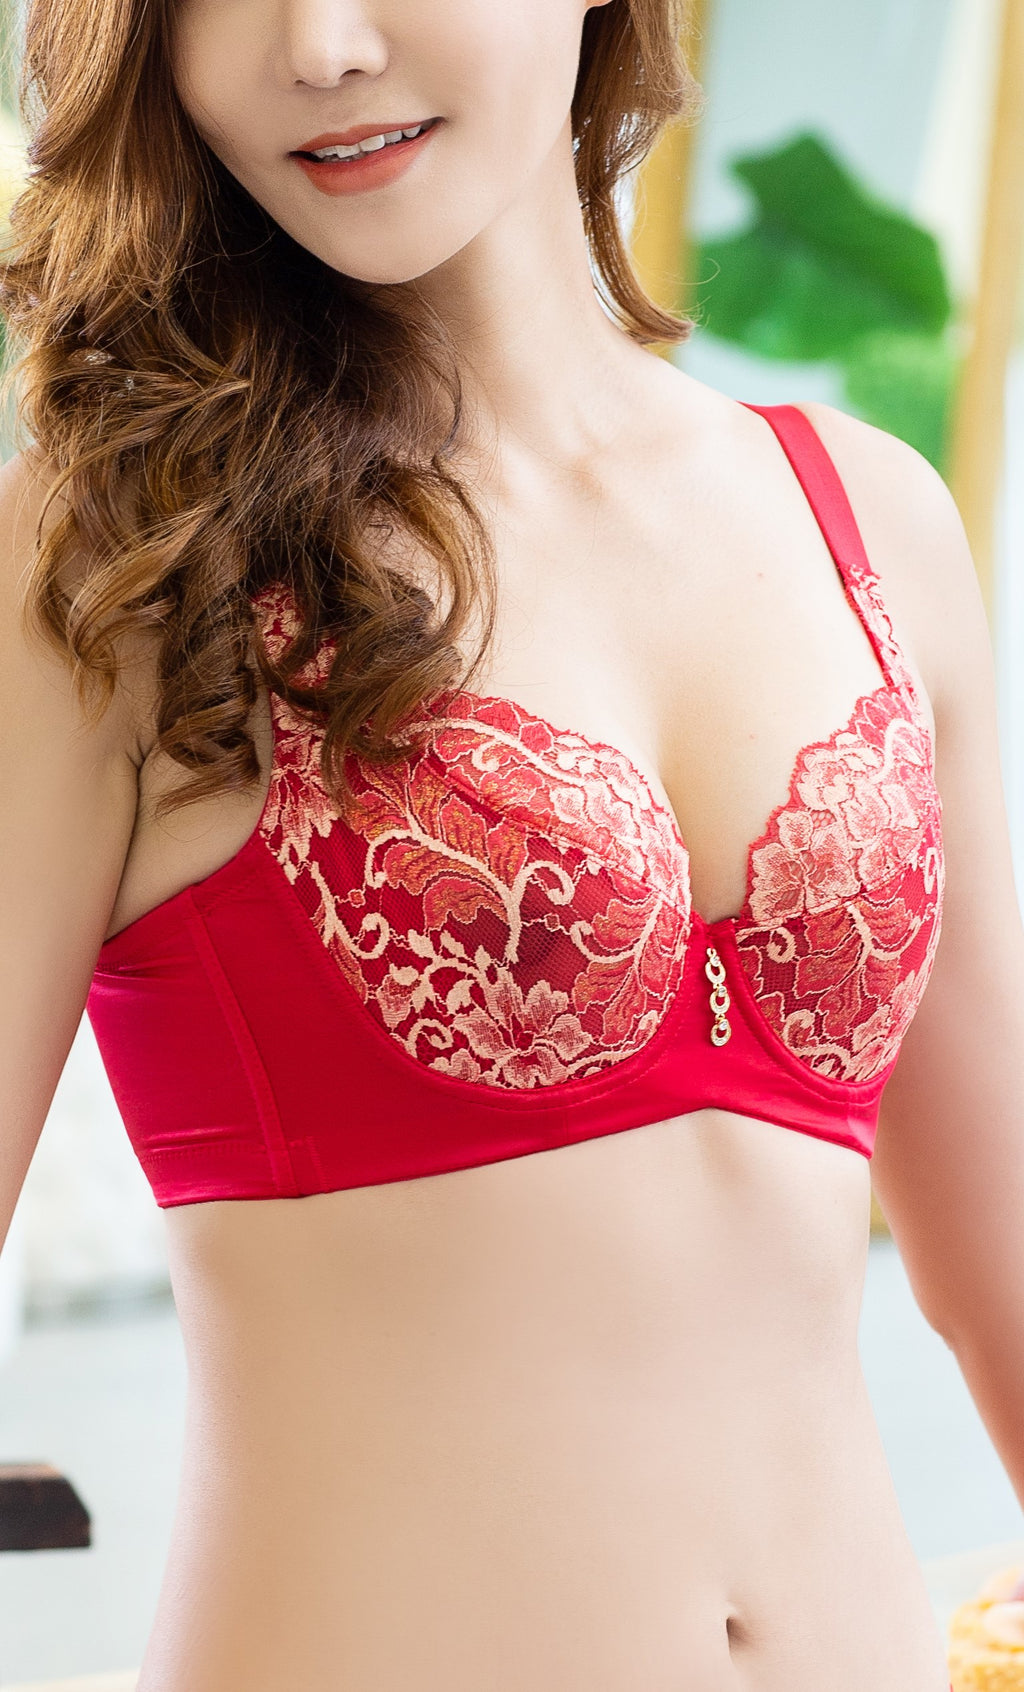 Lace Full Coverage Bra for Women with Push Up V Cup Wireless Underwire #11608